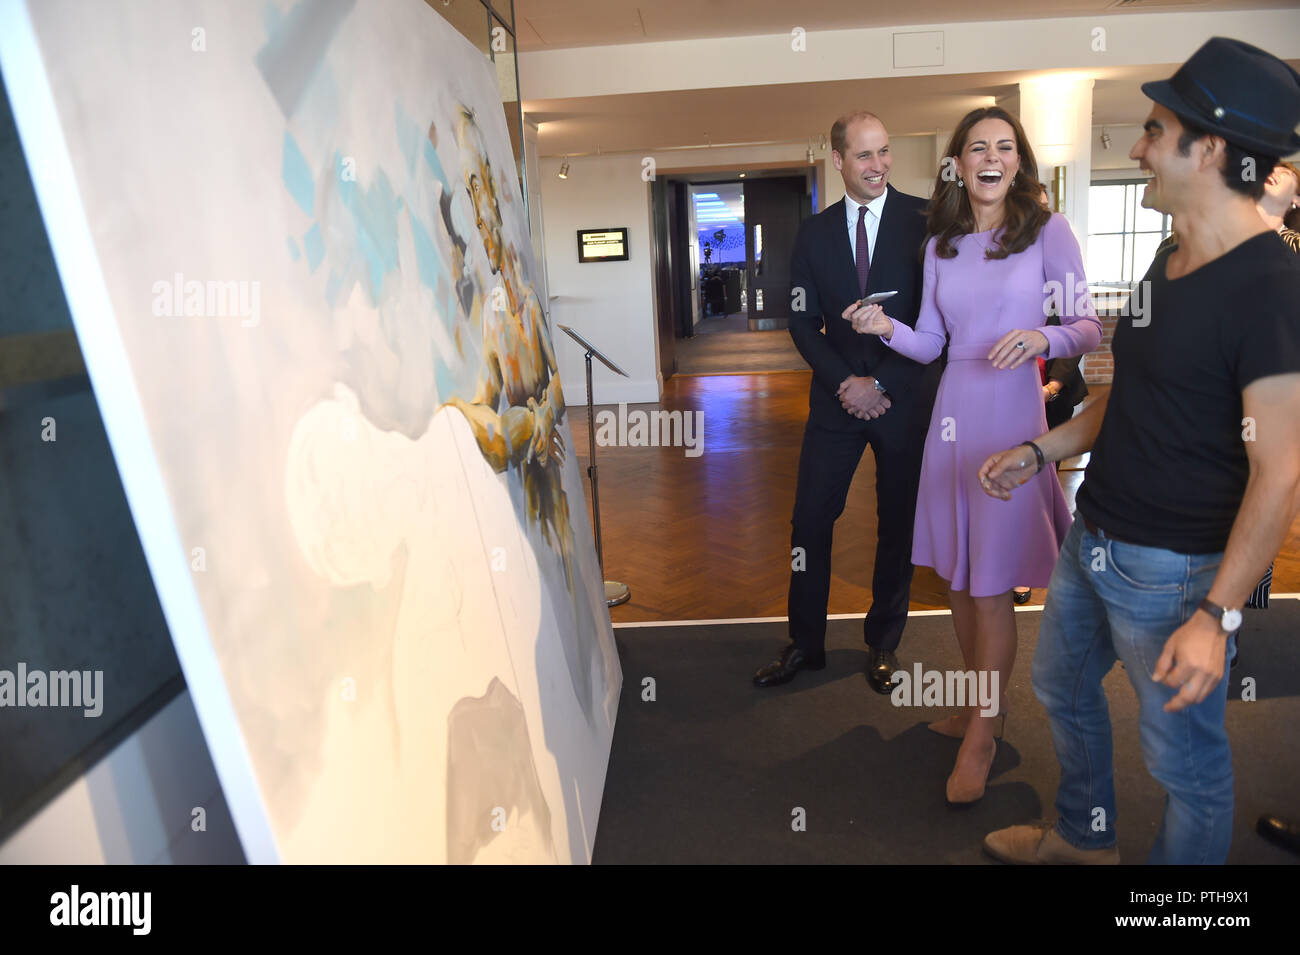 The Duke and Duchess of Cambridge view the work of Dairo Vargas, a